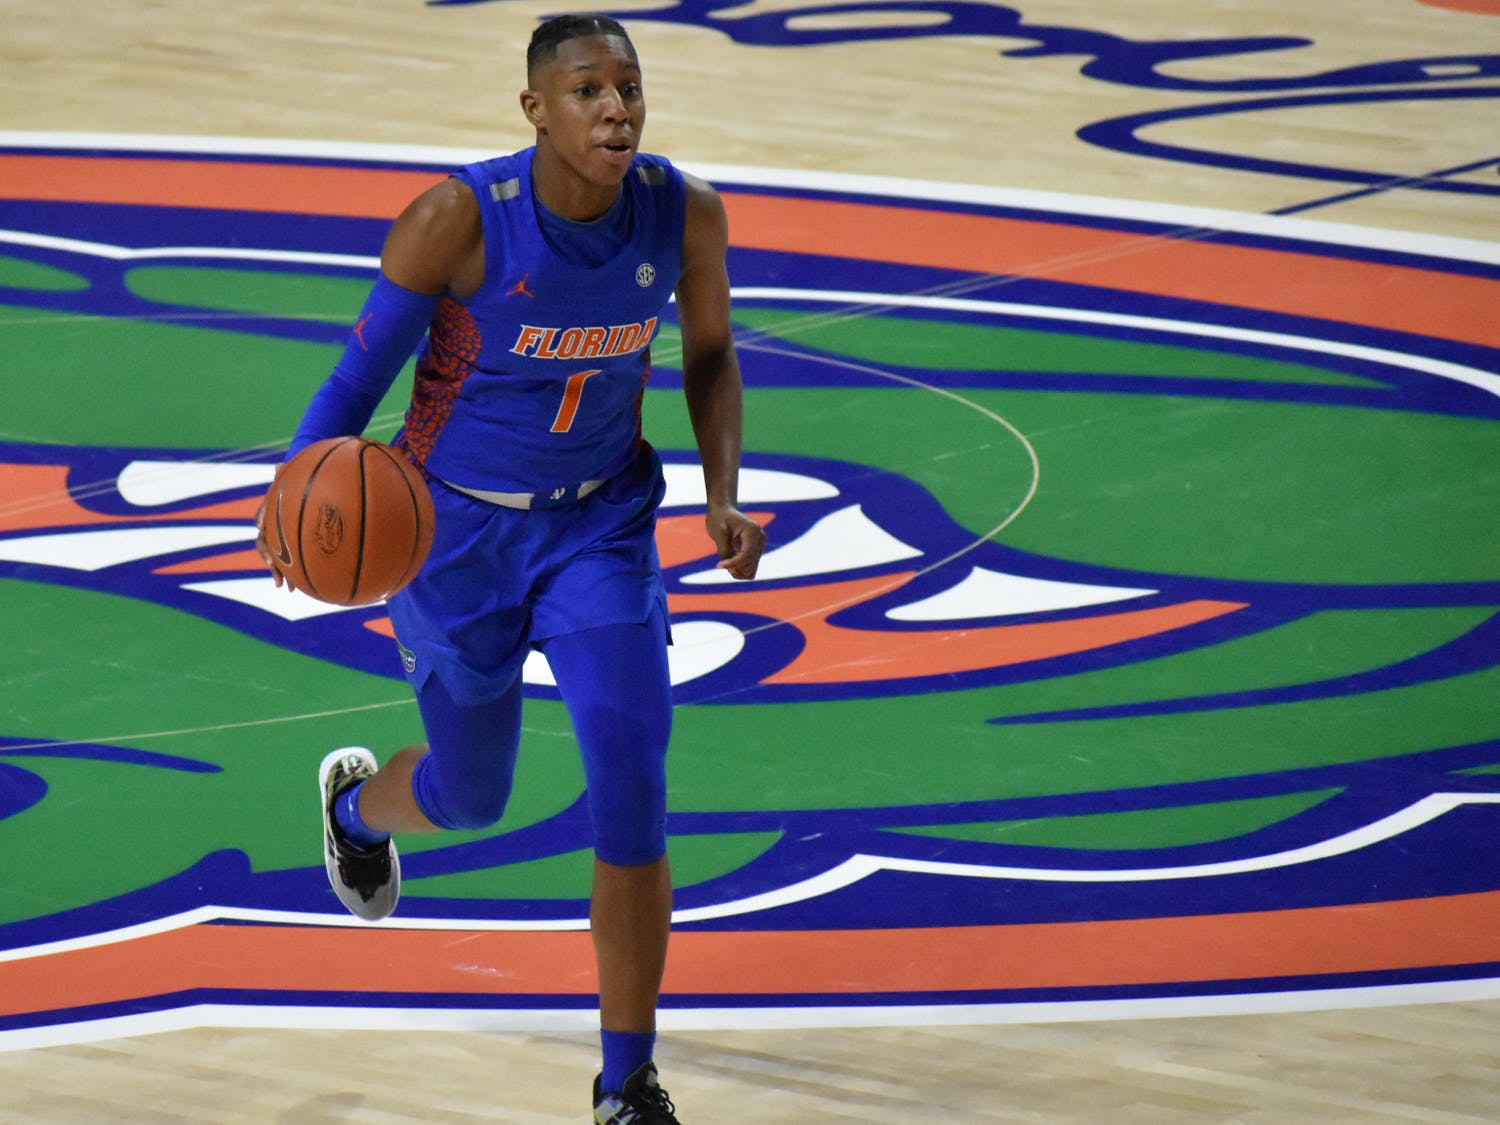 Kiara Smith played the entire game and matched her career-high 27 points Thursday night.